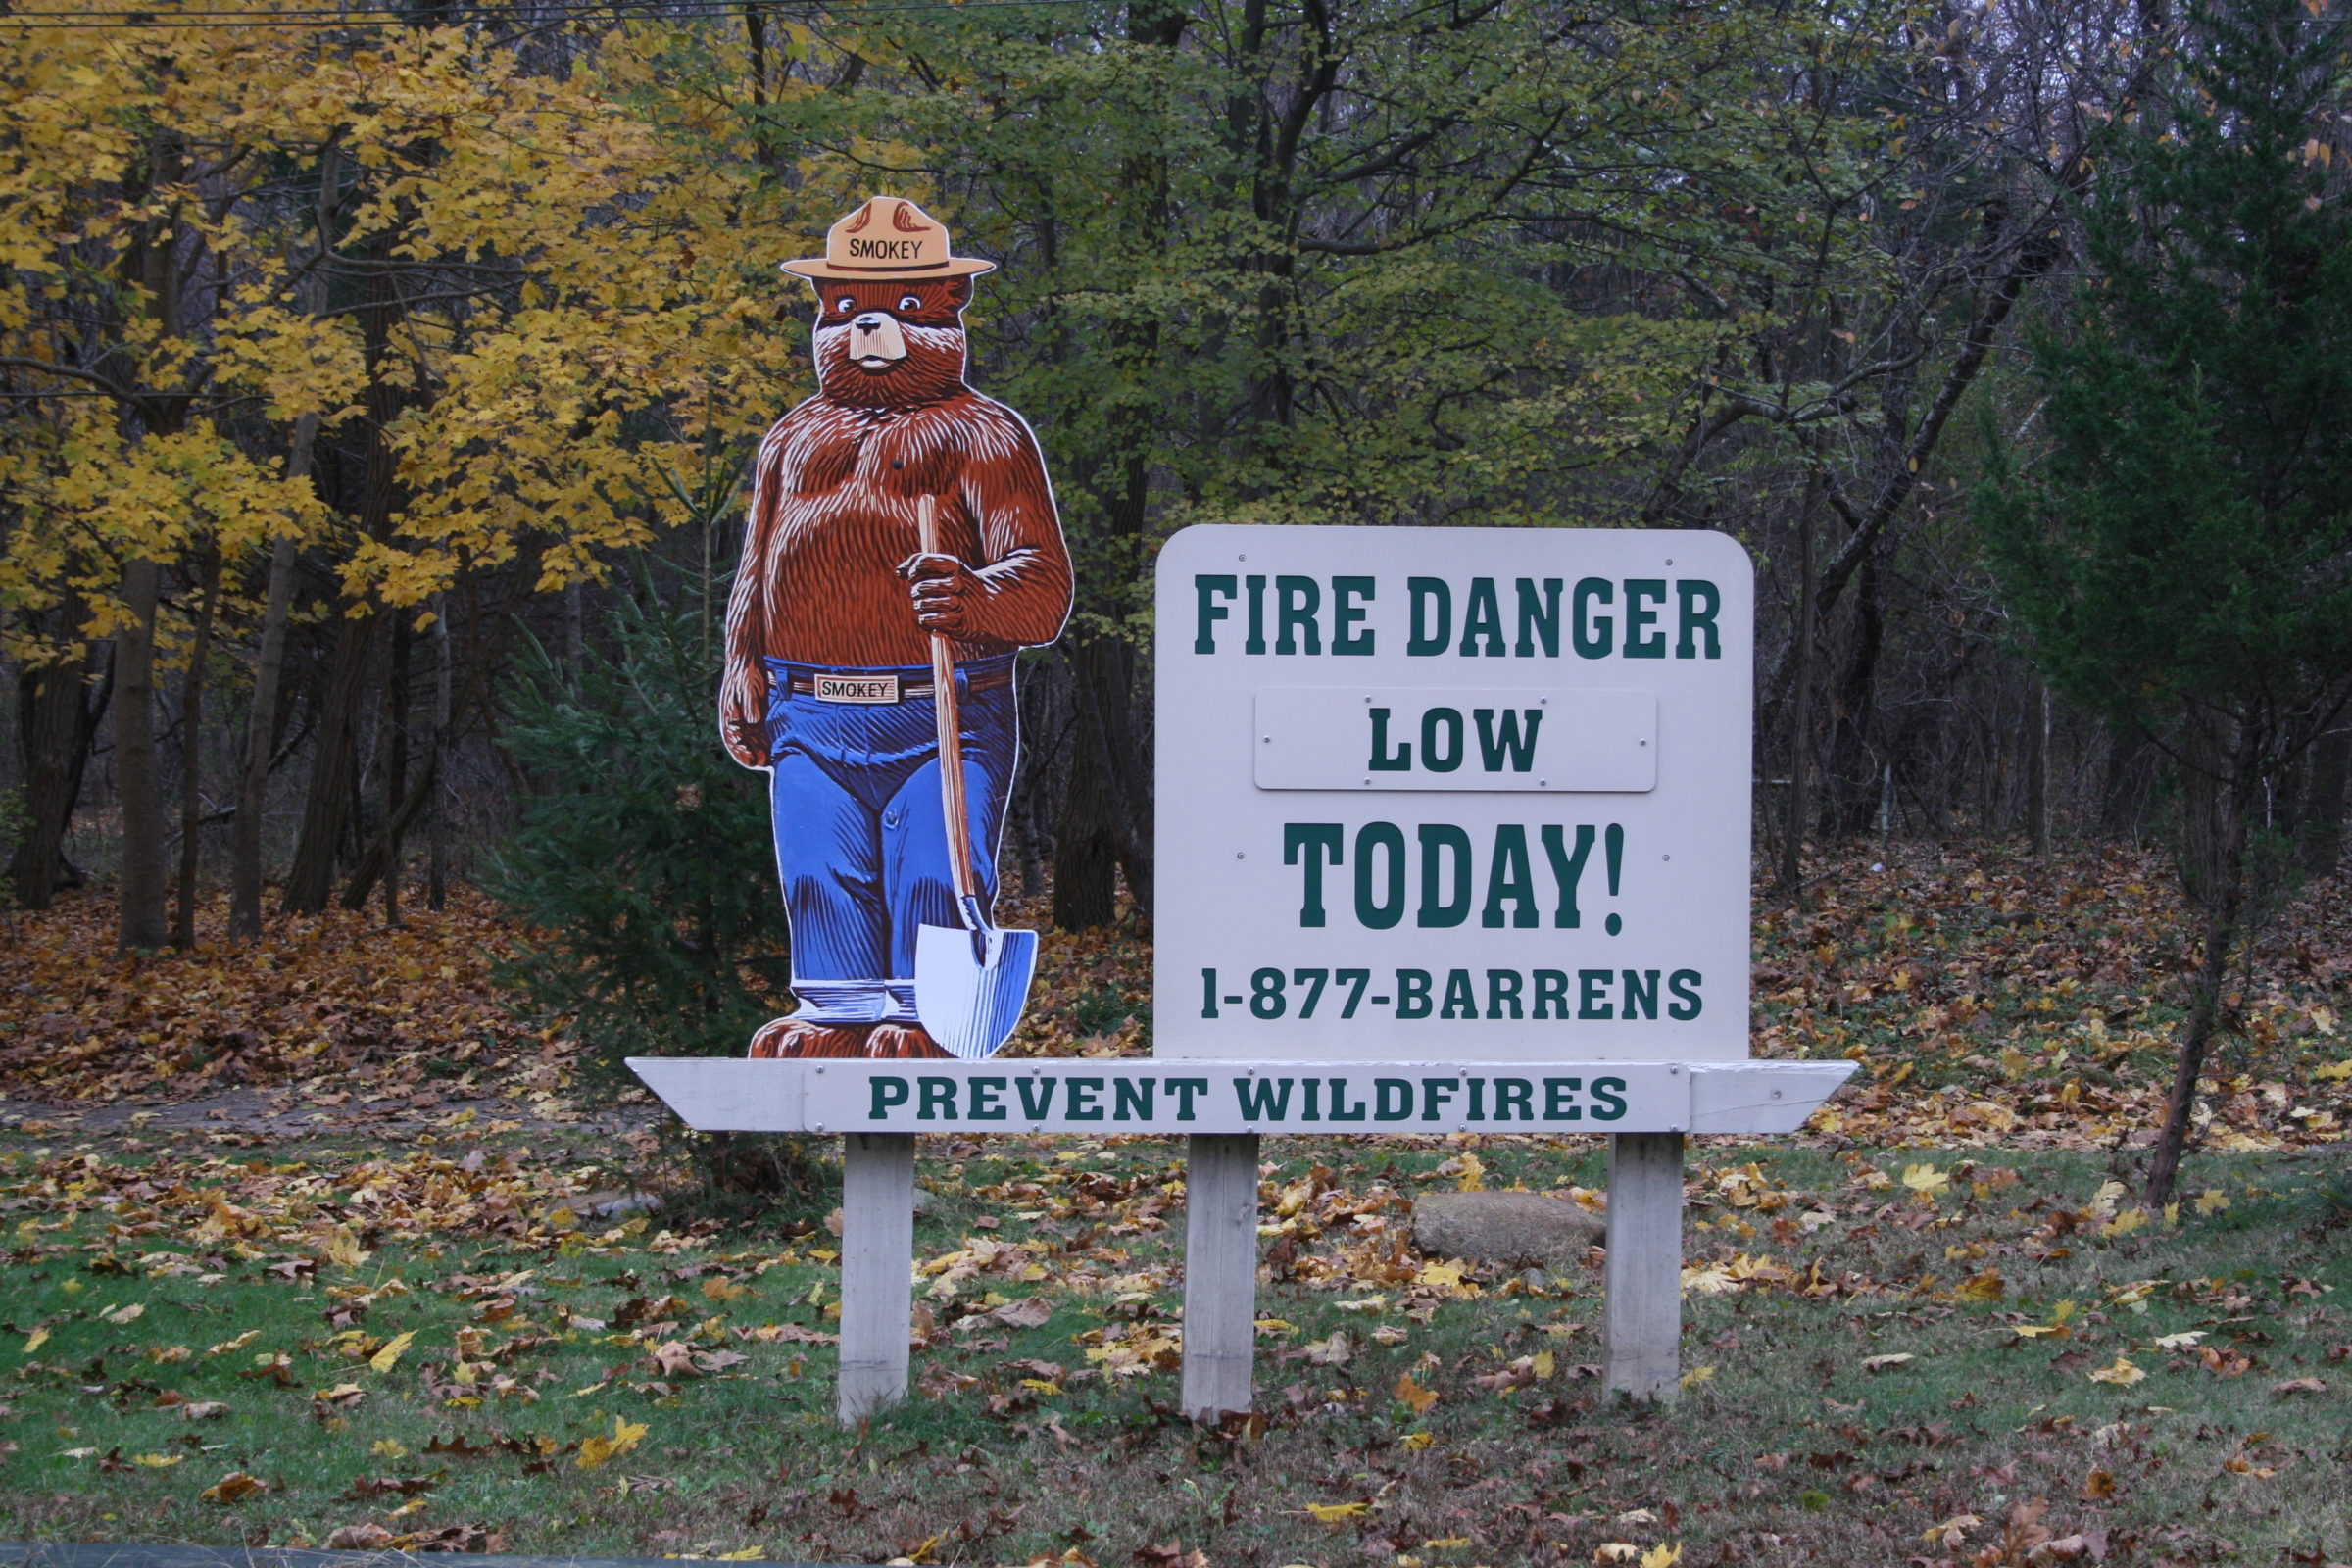 Smokey the Bear Fire Danger Rating Sign in the Long Island Pine Barrens